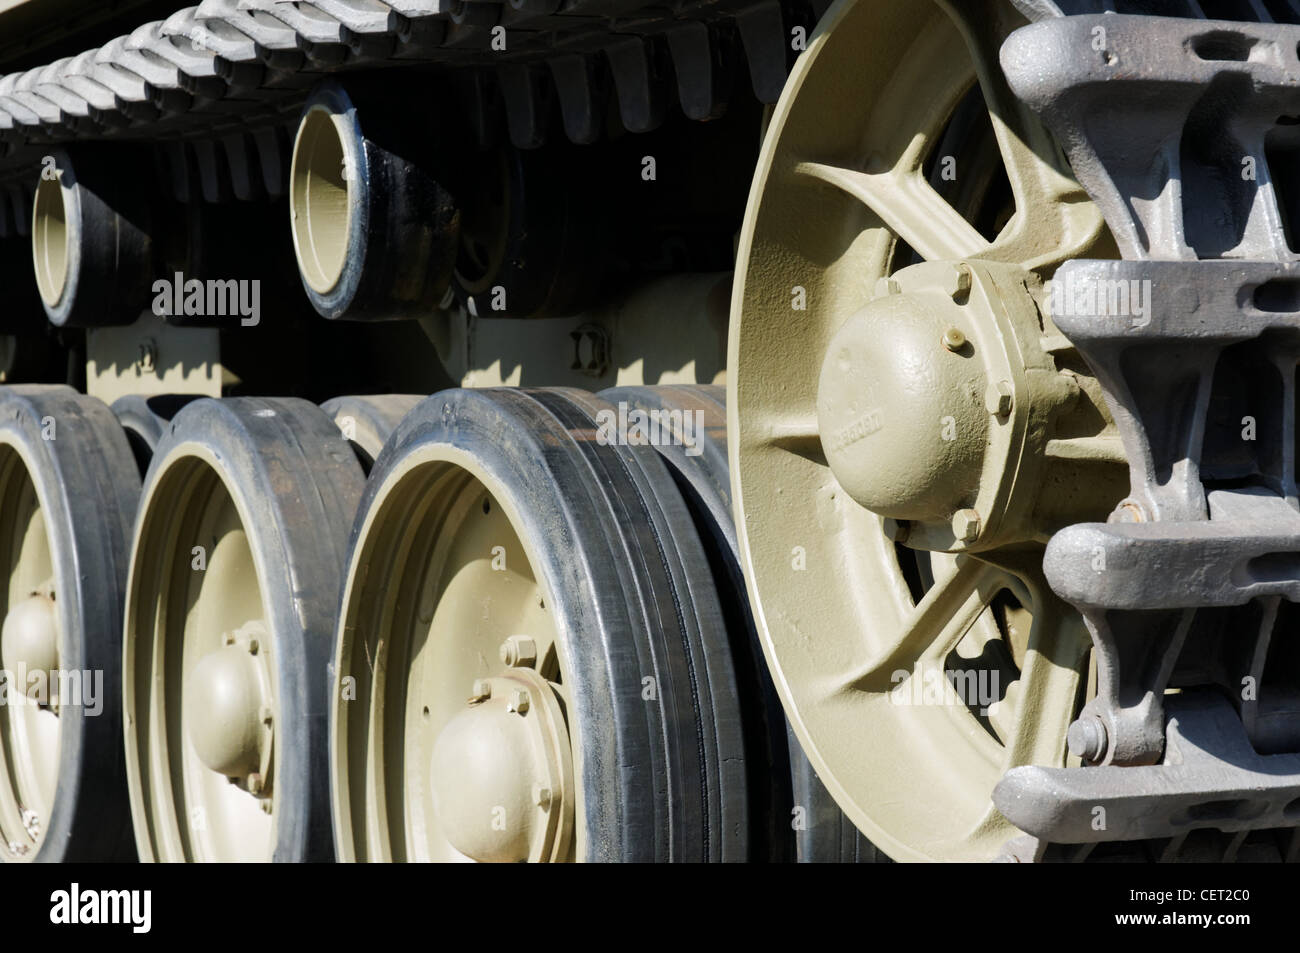 A close up of tank wheels and tracks - Stock Image